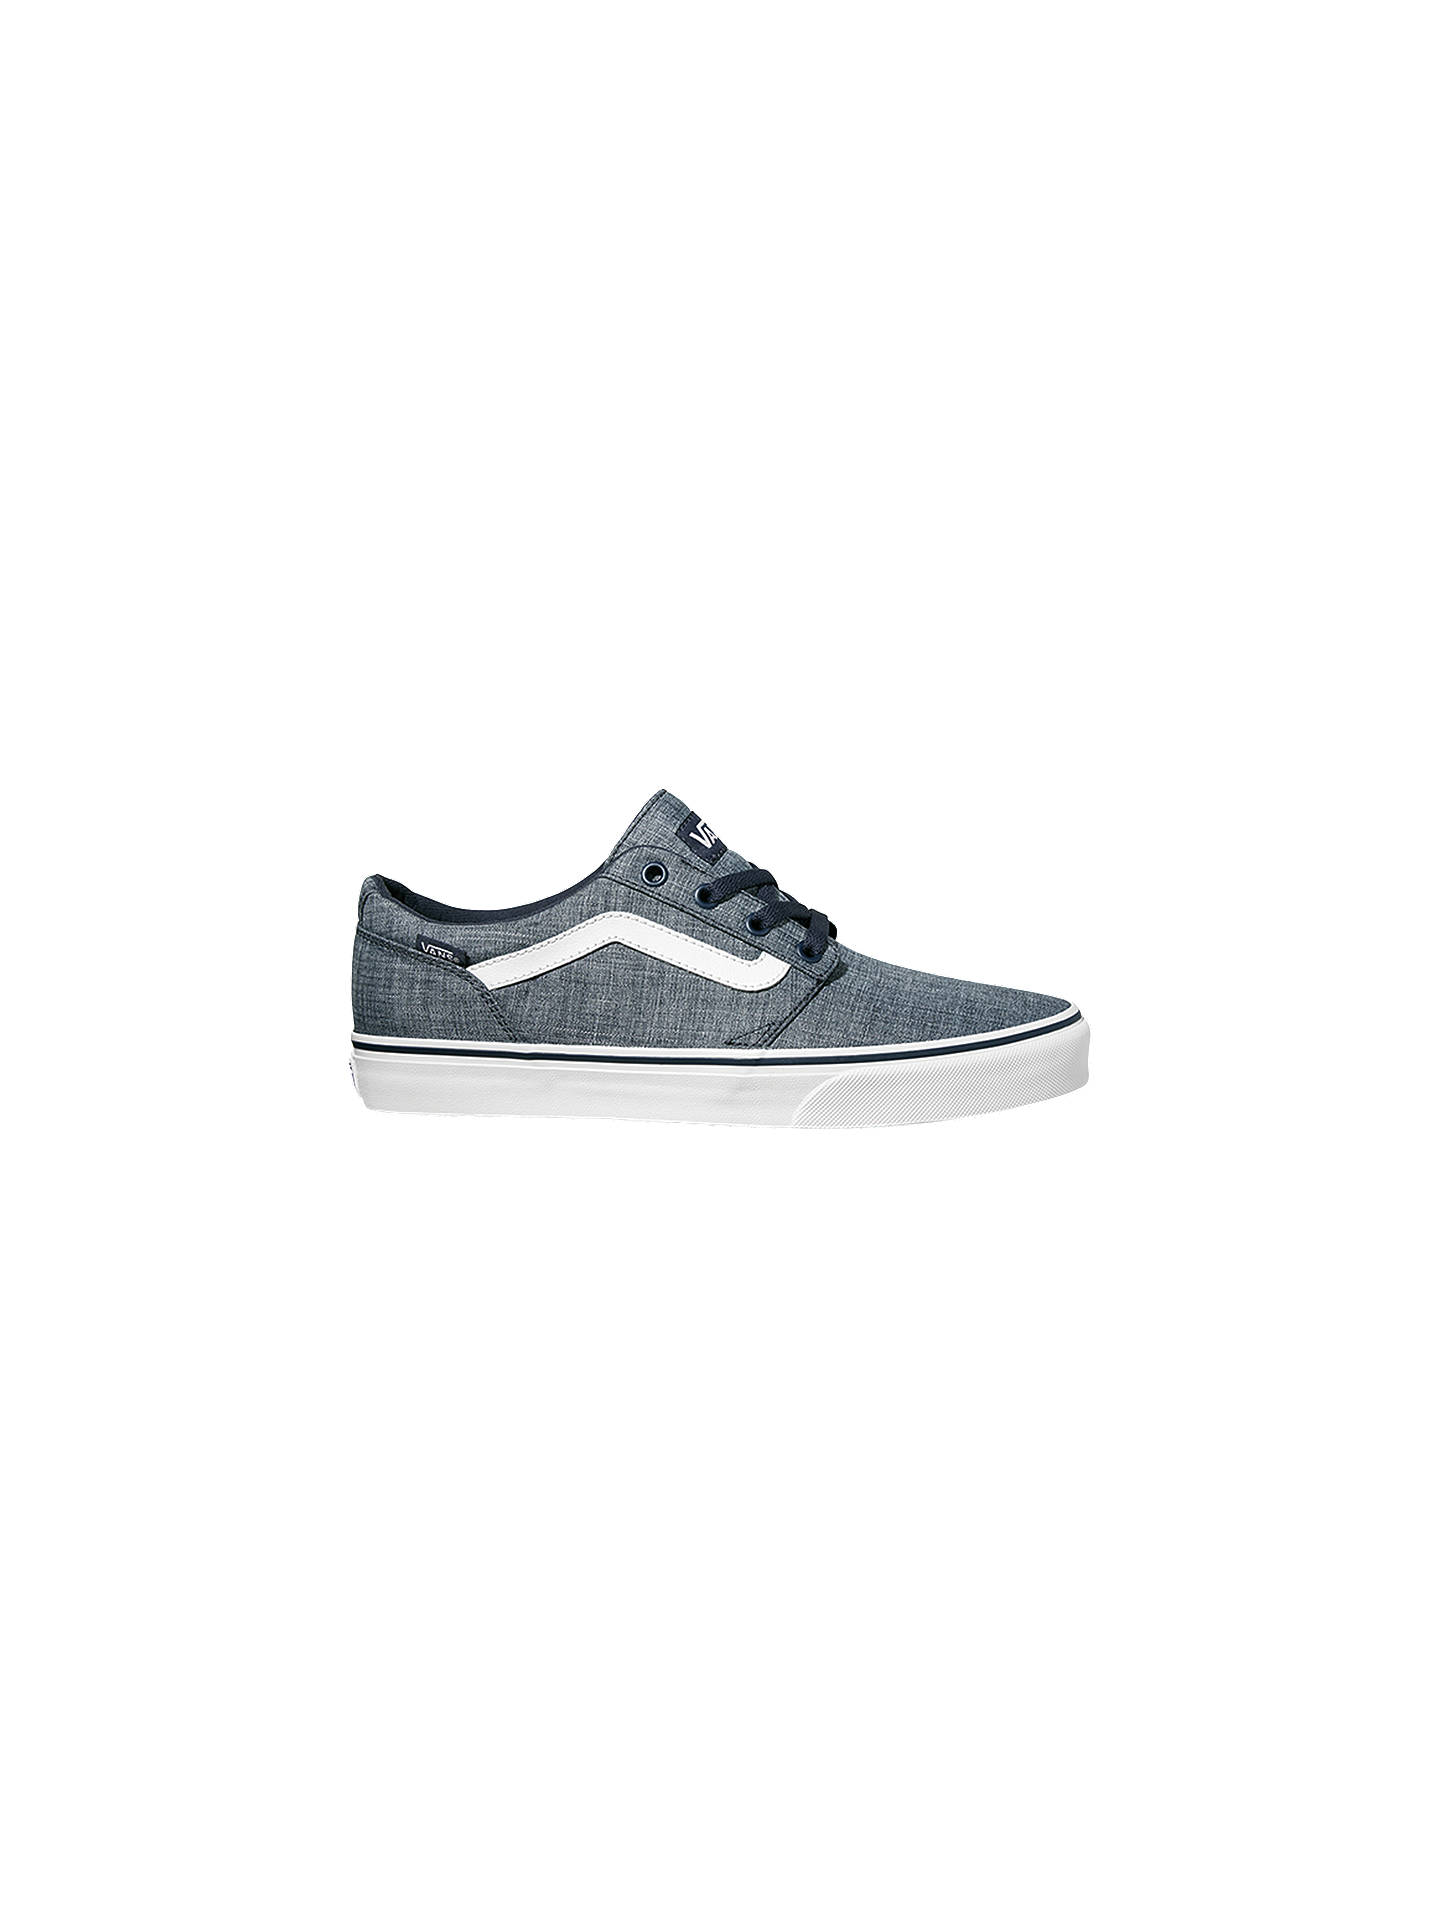 82565363a11 Vans Chapman Stripe Canvas Trainers at John Lewis   Partners